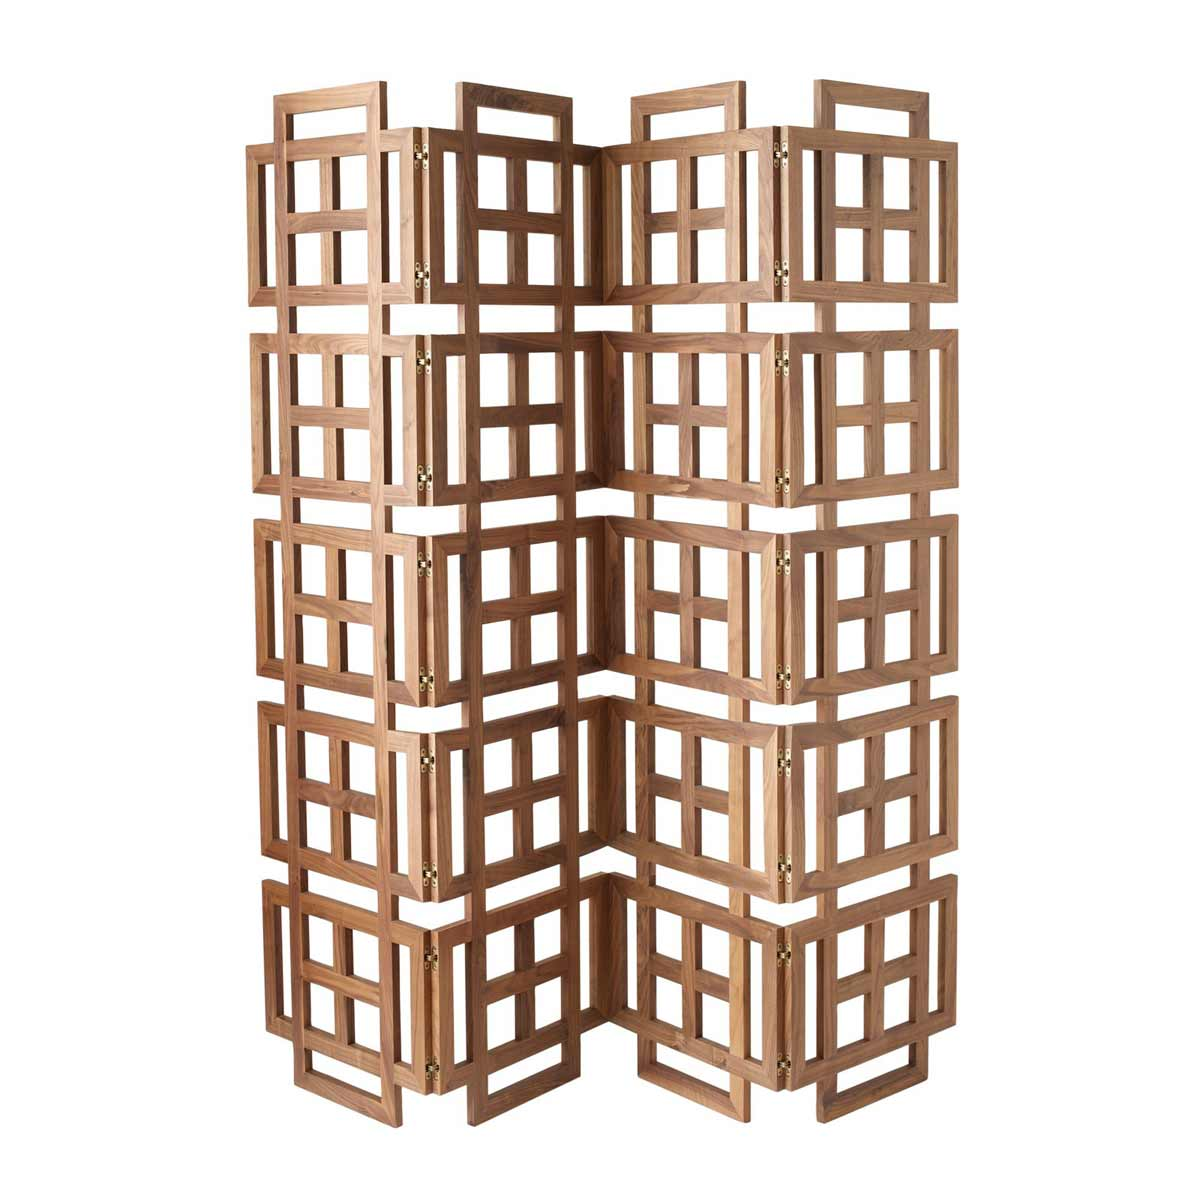 four panel wooden folding room screens